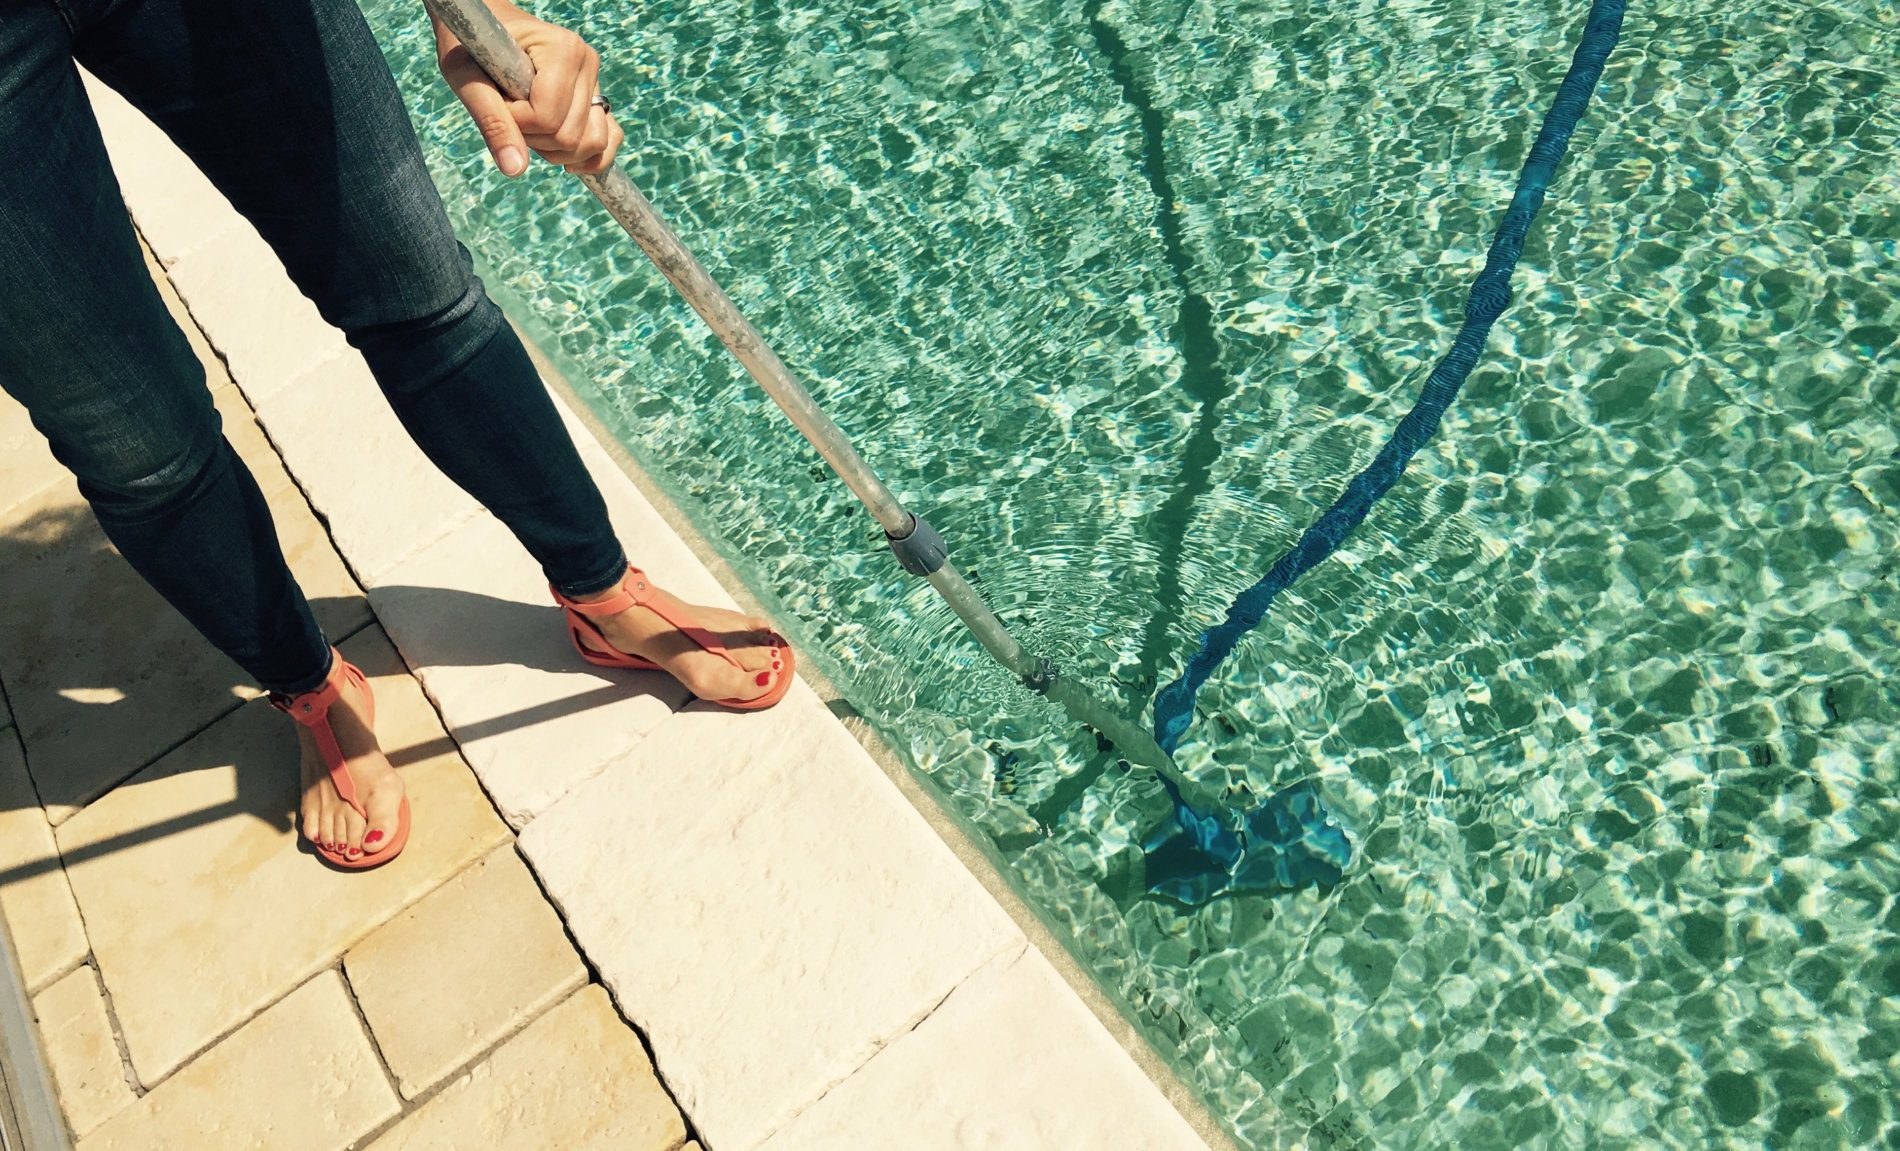 Dont be a slave to your pool - buy Compass self-cleaning pool